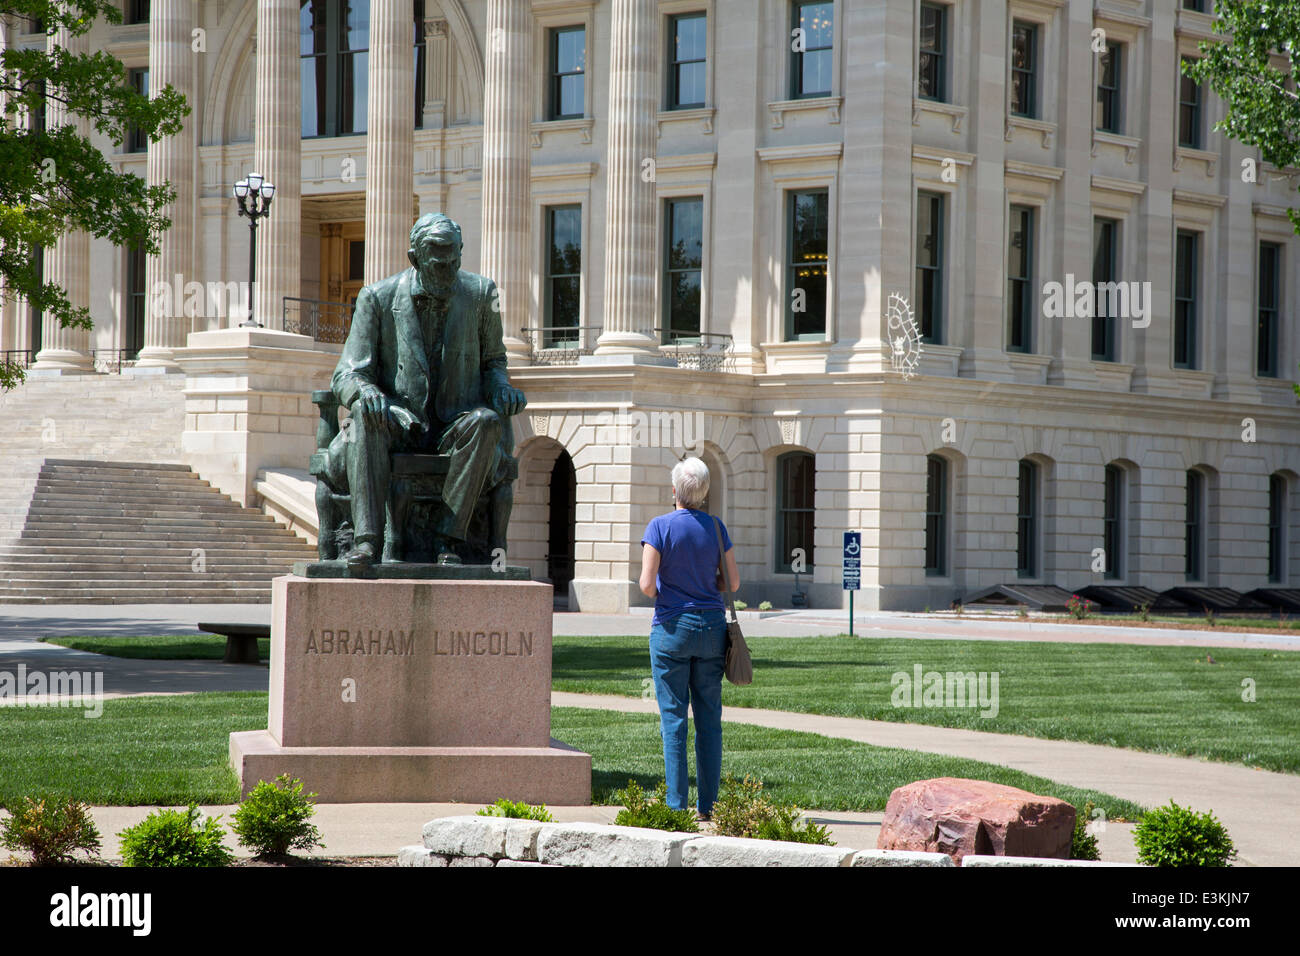 Topeka, Kansas - A statue of Abraham Lincoln on the grounds of the Kansas state capitol. Stock Photo